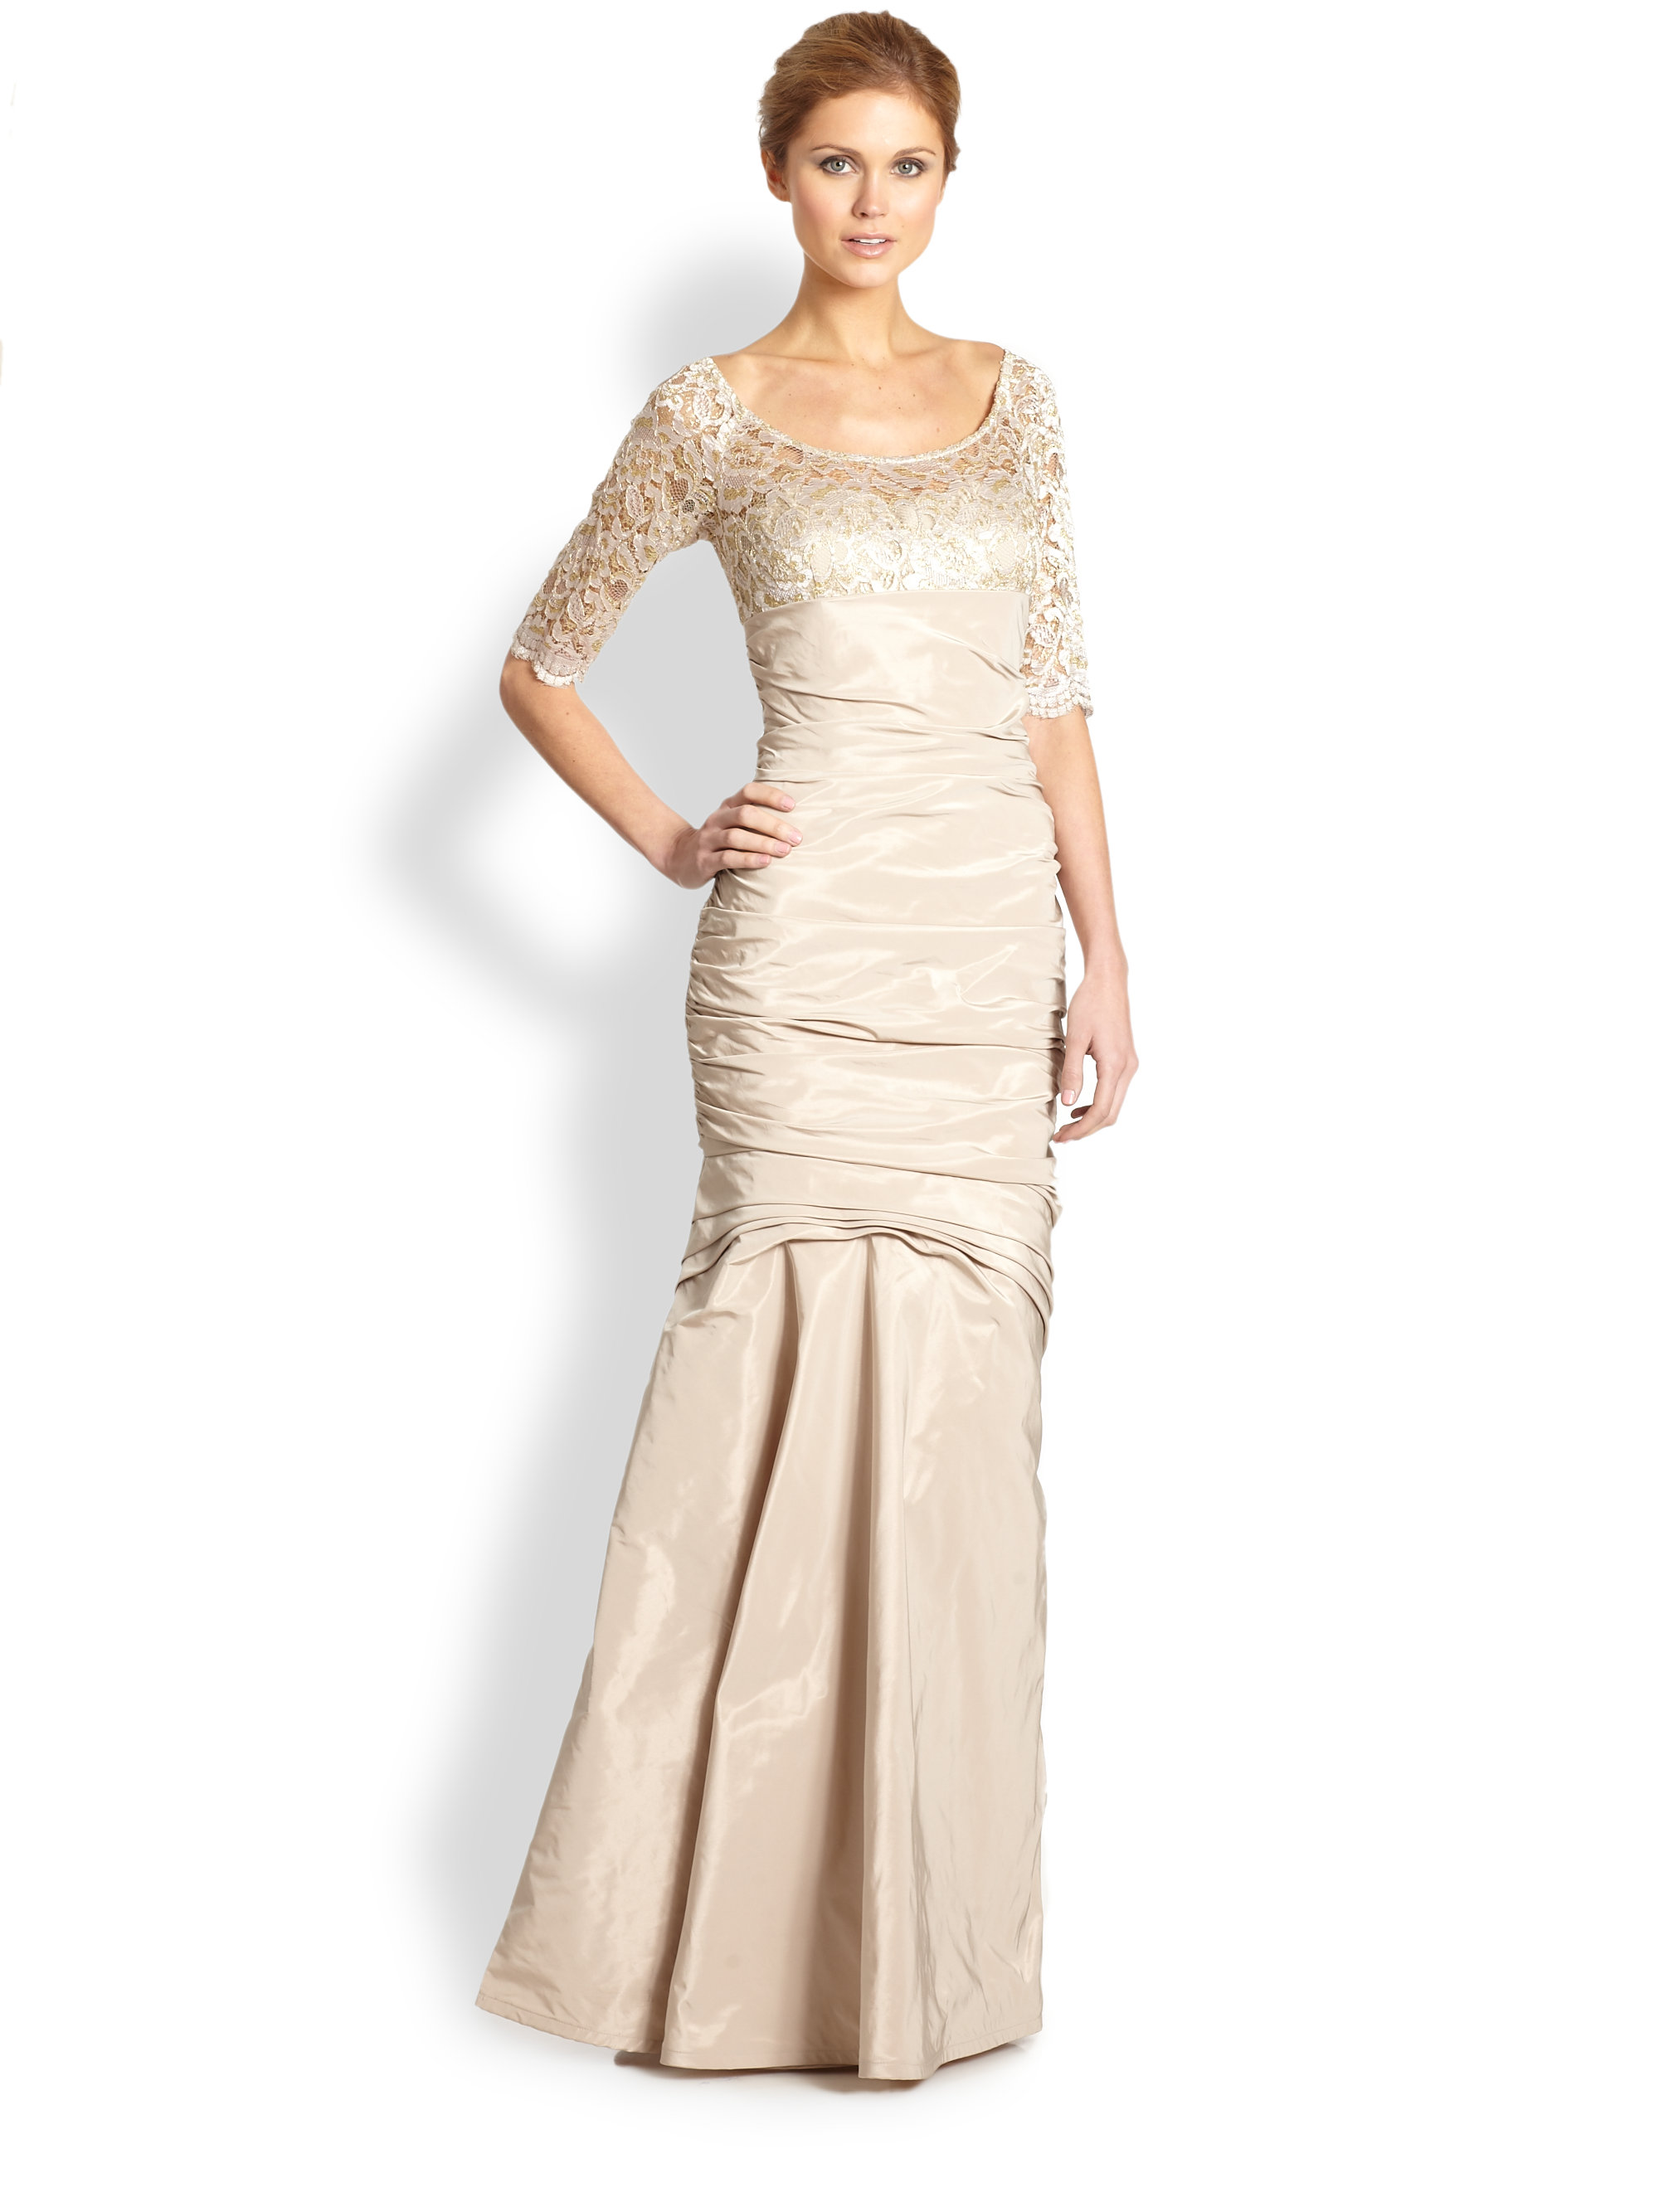 Lyst - Teri Jon Lacetrimmed Trumpet Gown in Natural